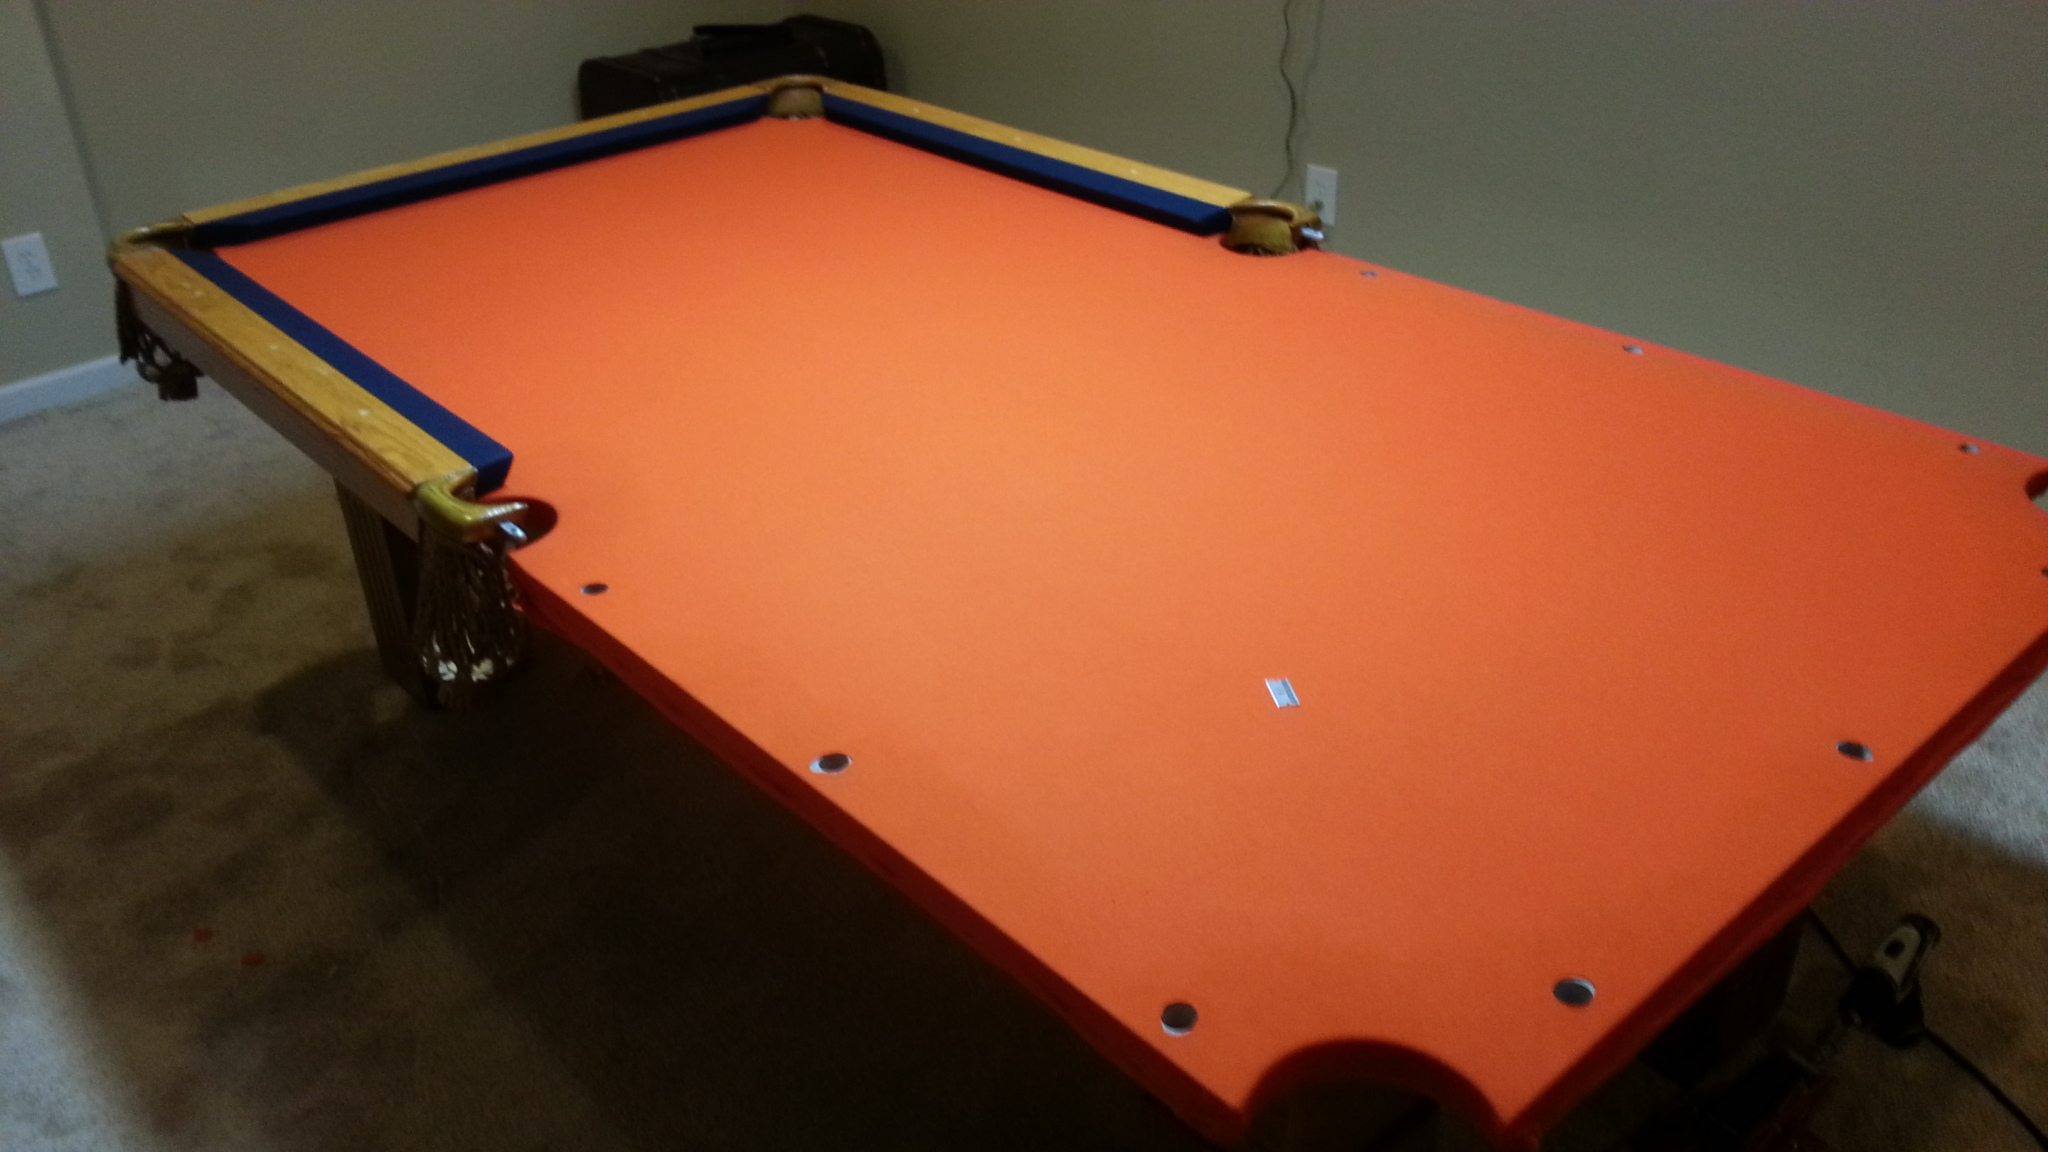 Used Pool Table Assembly With Denver Broncos Pool Table Cloth In - Pool table assembly near me